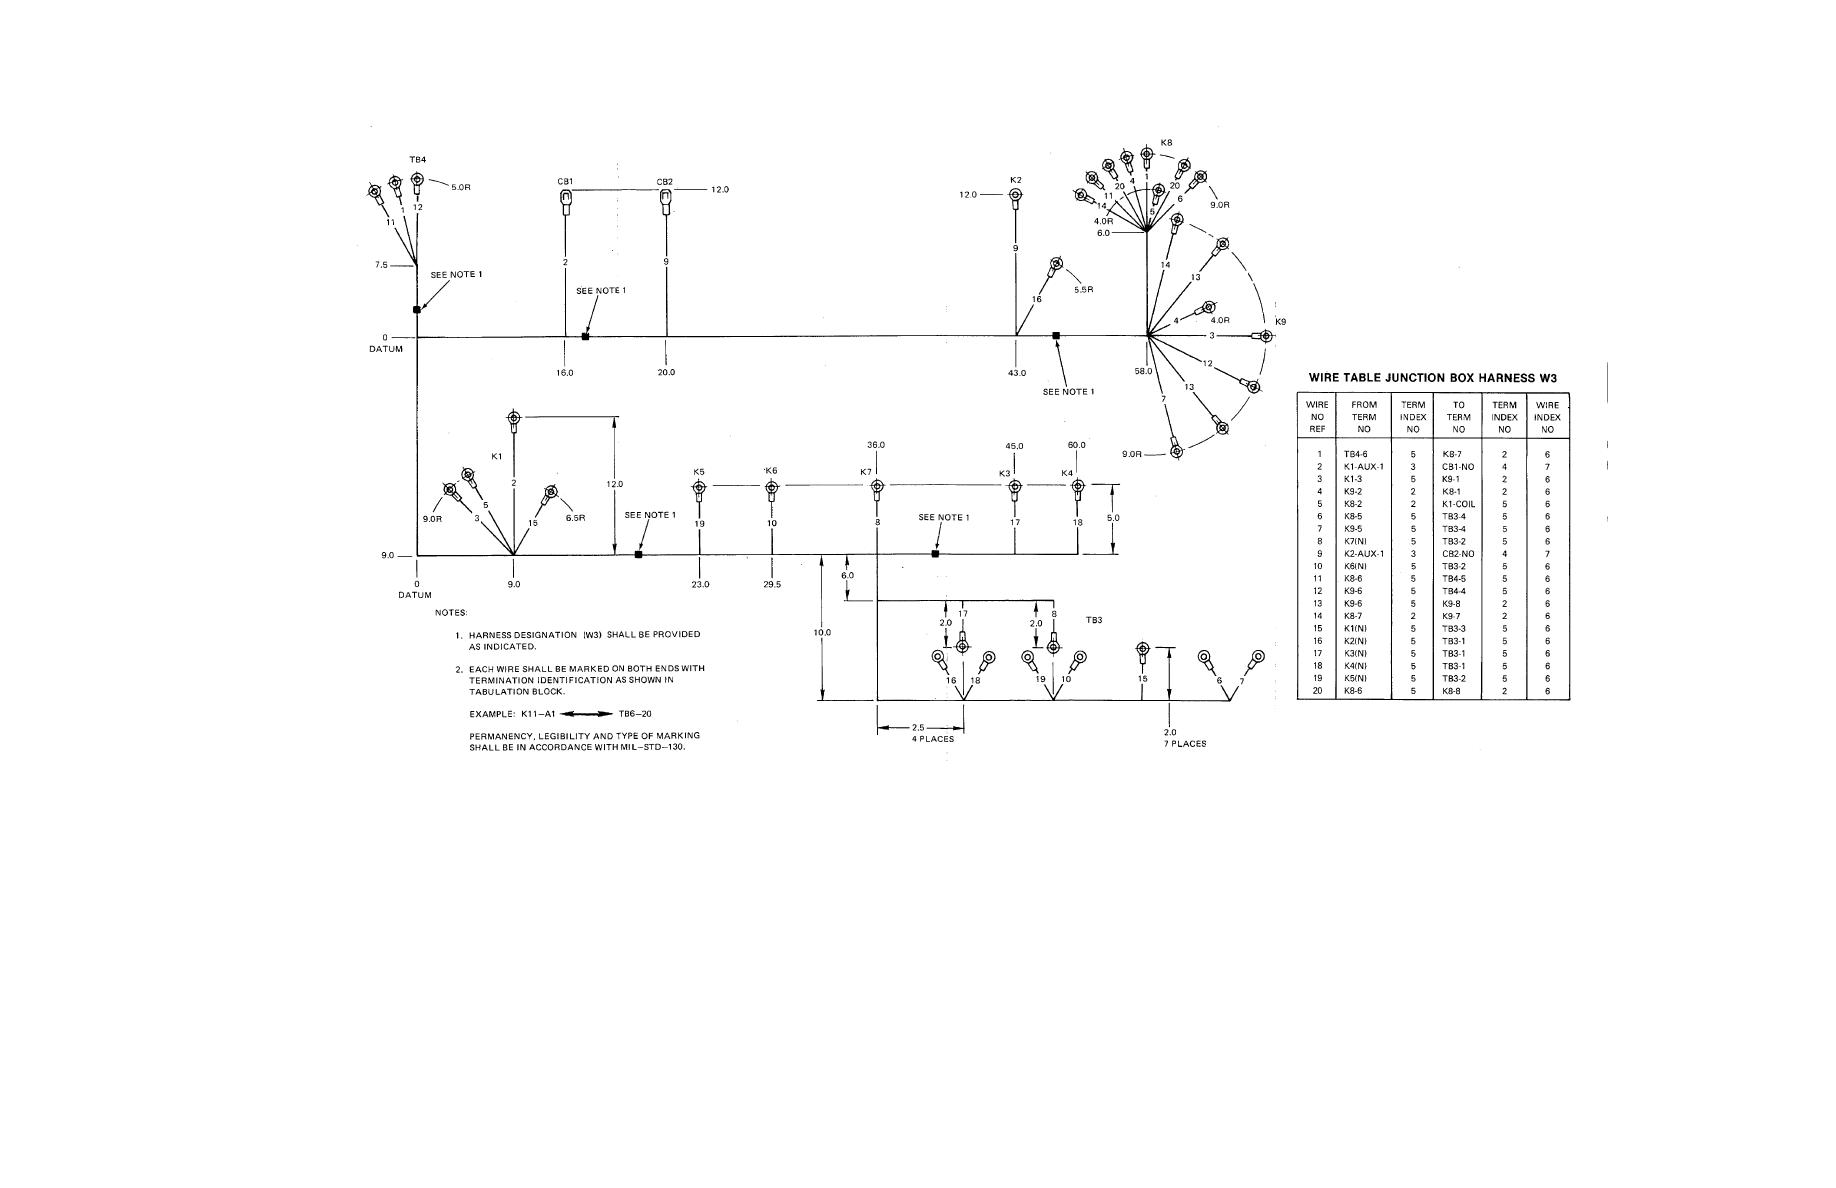 wiring diagram junction box single phase distribution transformer fo 7 harness w3